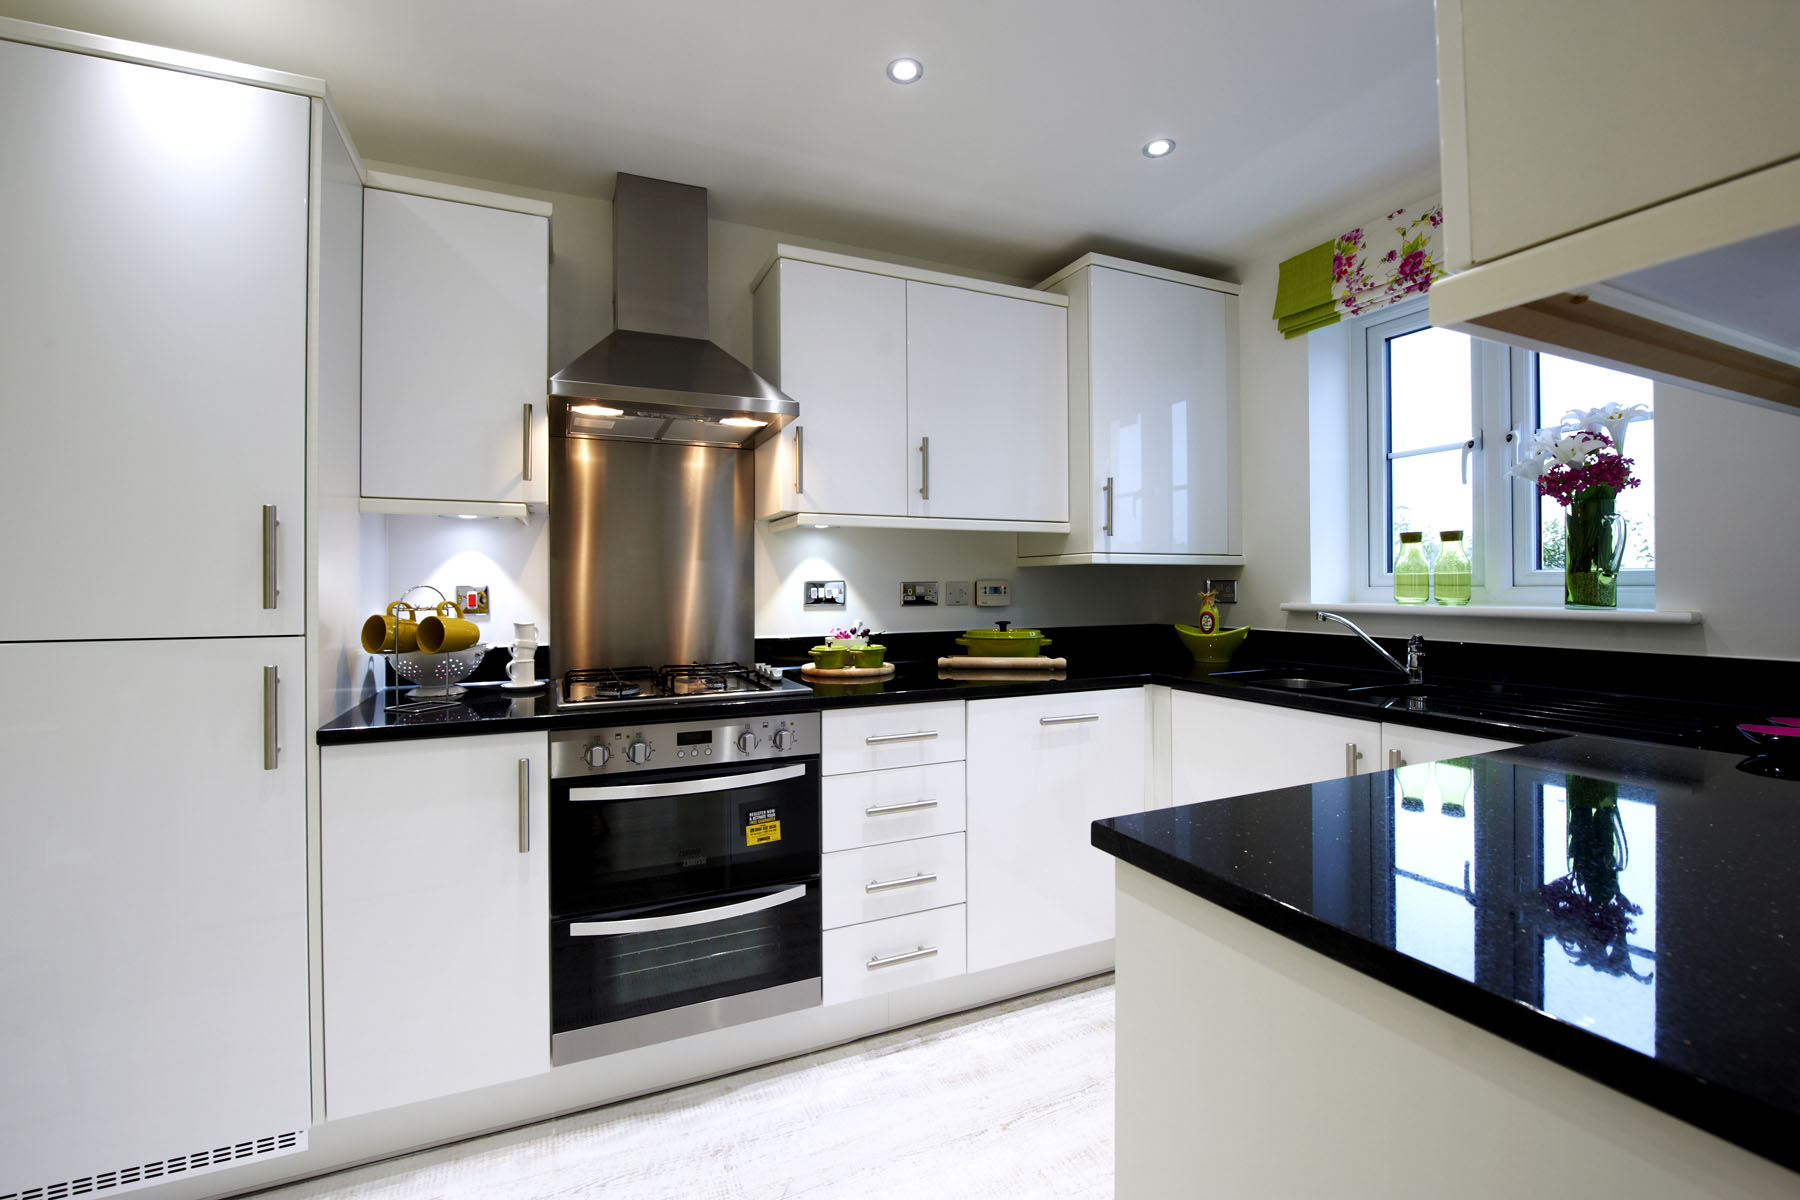 A typical Taylor Wimpey kitchen